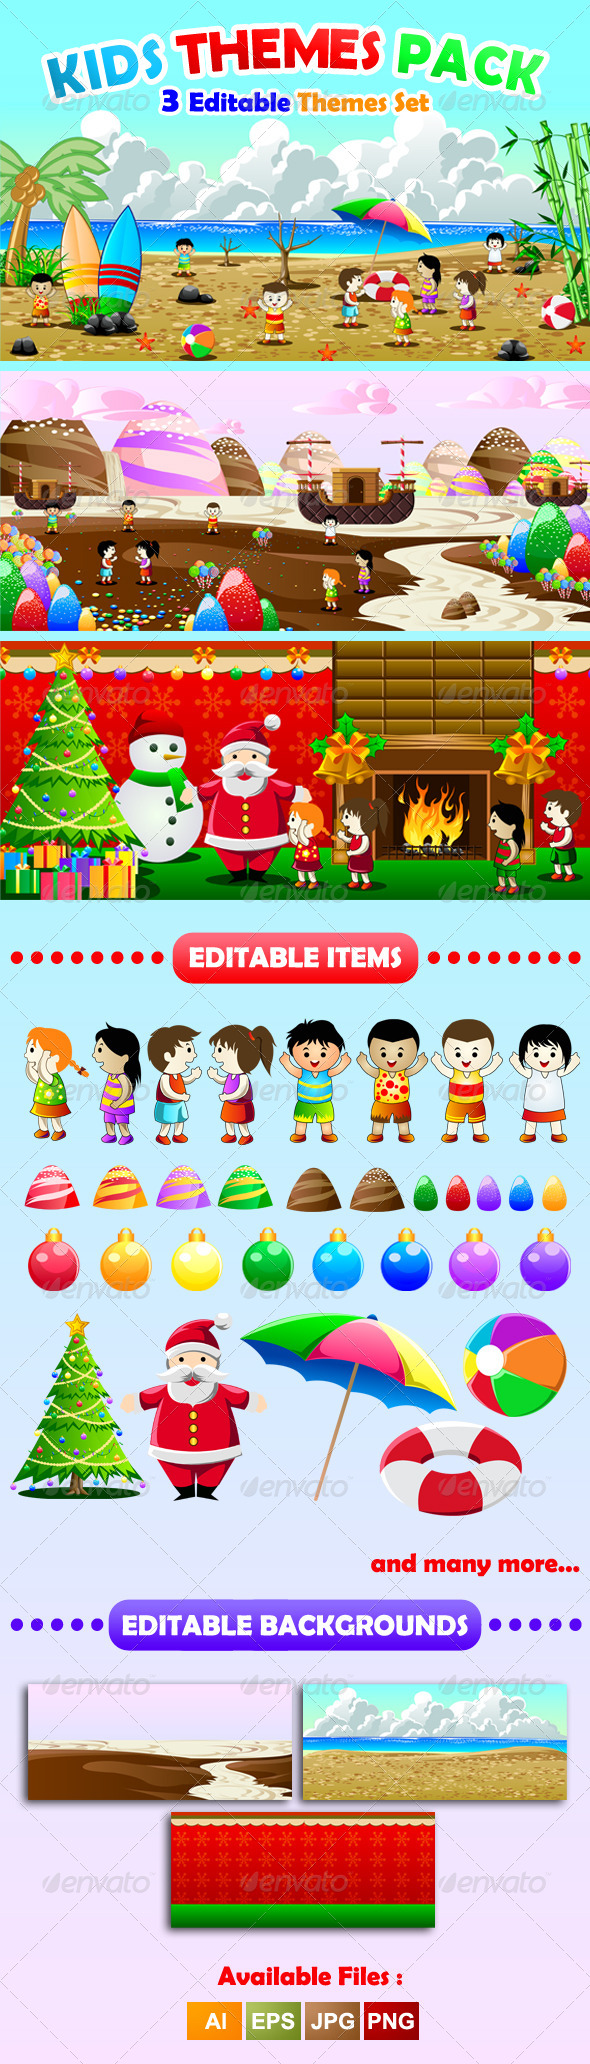 Kids Theme Pack